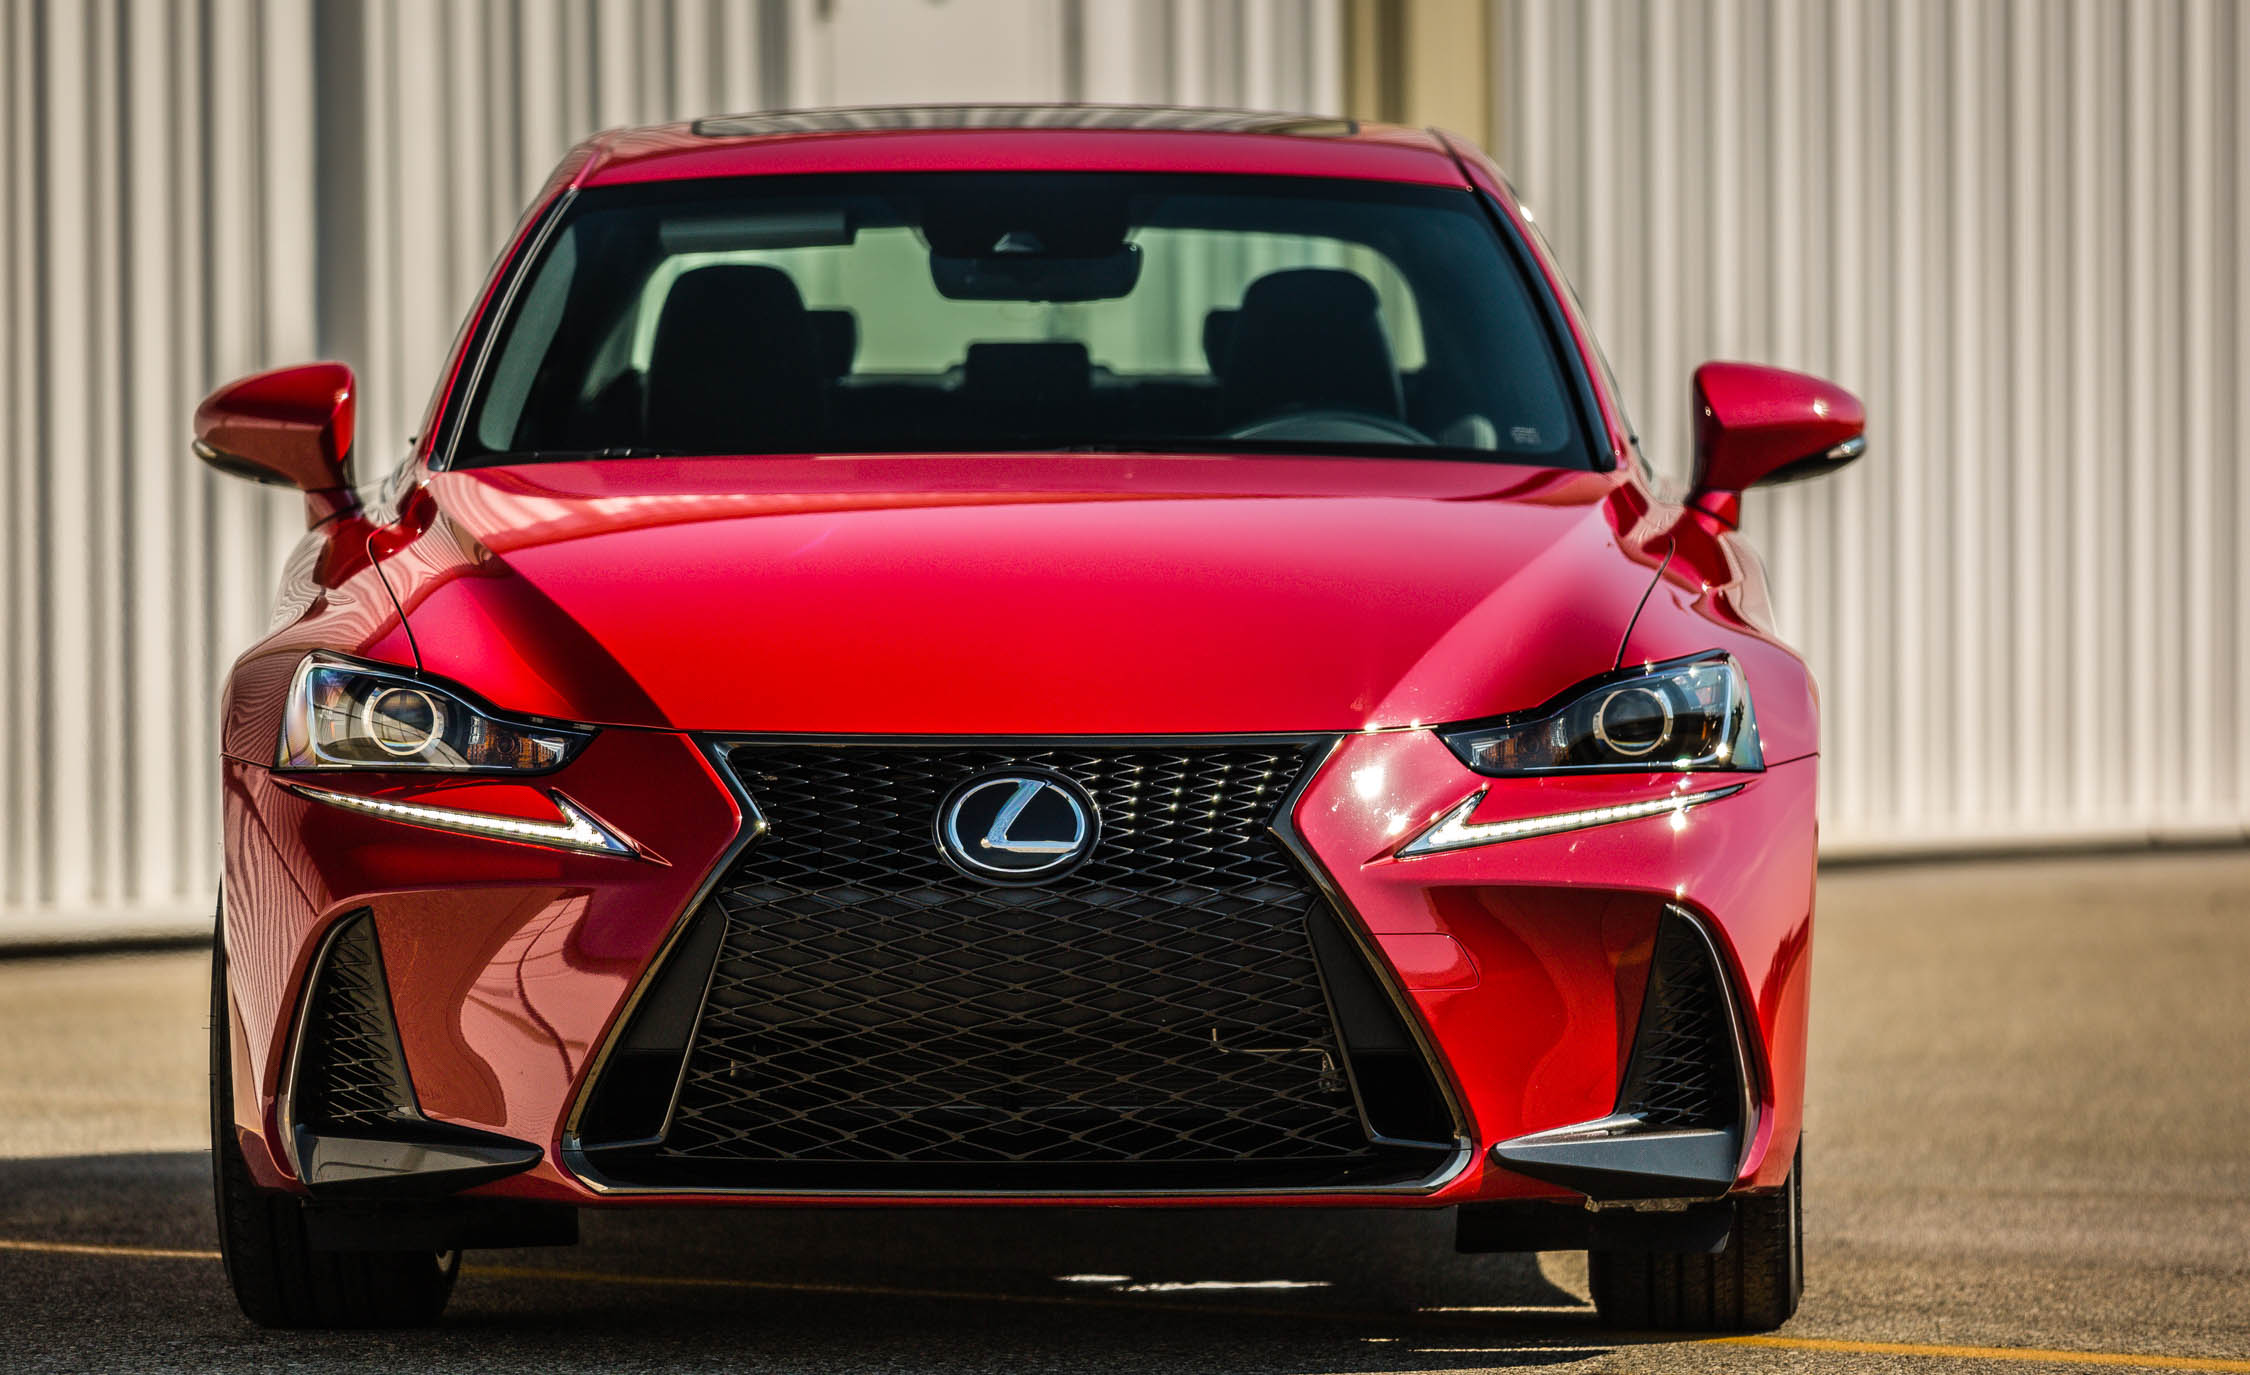 2017 Lexus IS 200t F Sport Red Exterior Front (Photo 12 of 29)